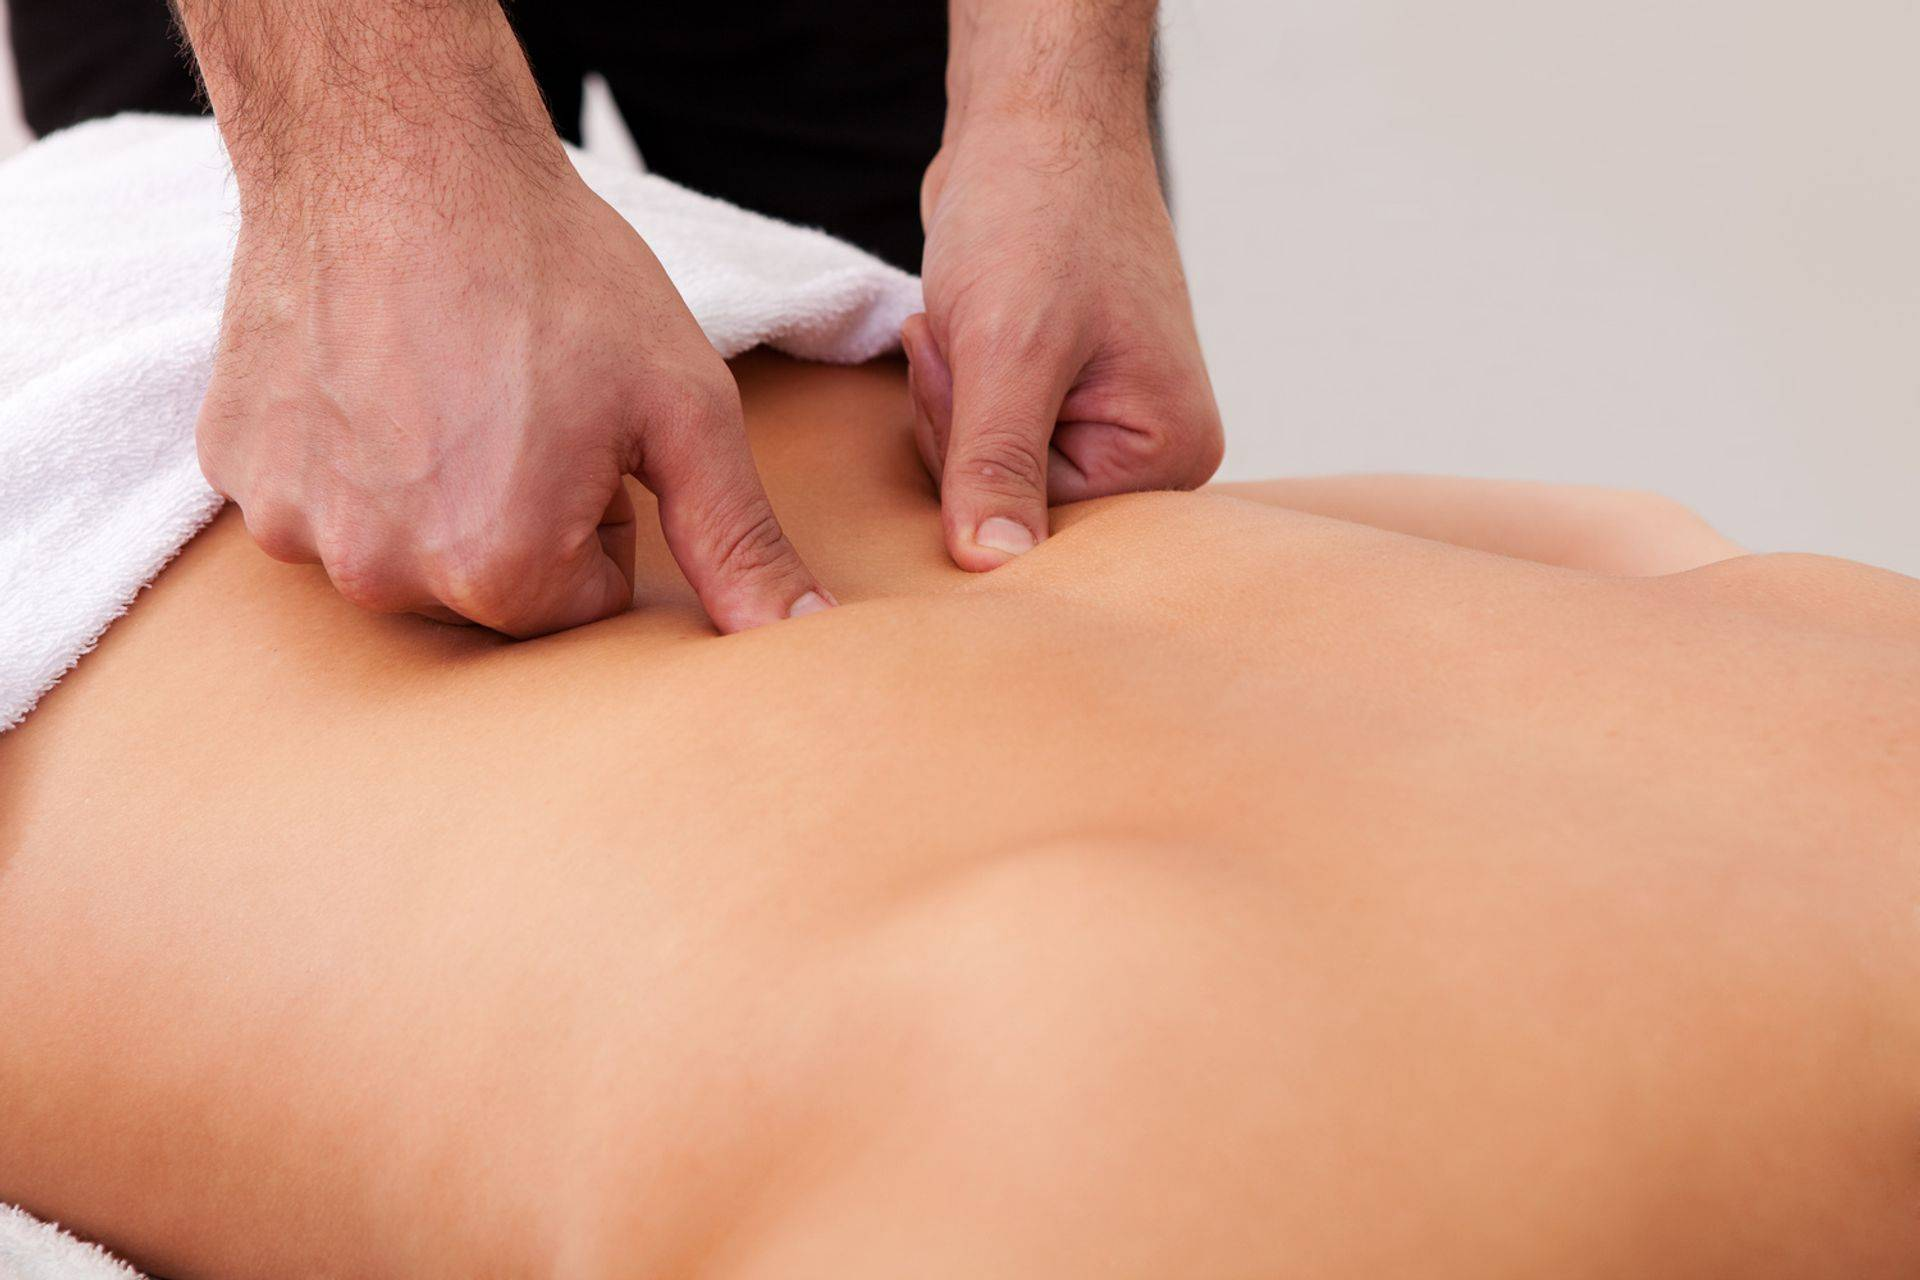 _Back Pain and Treatment Harrogate,Ilkley, Knaresborough, Ripon,  Wetherby, www.harrogatemassage.co.uk__ North Yorkshire -UK                                                                             Wetherby, Fusionage Therapies-Rachael Inchboard  Massage in Harrogate, North Yorkshire, www.harrogatemassage.co.uk__